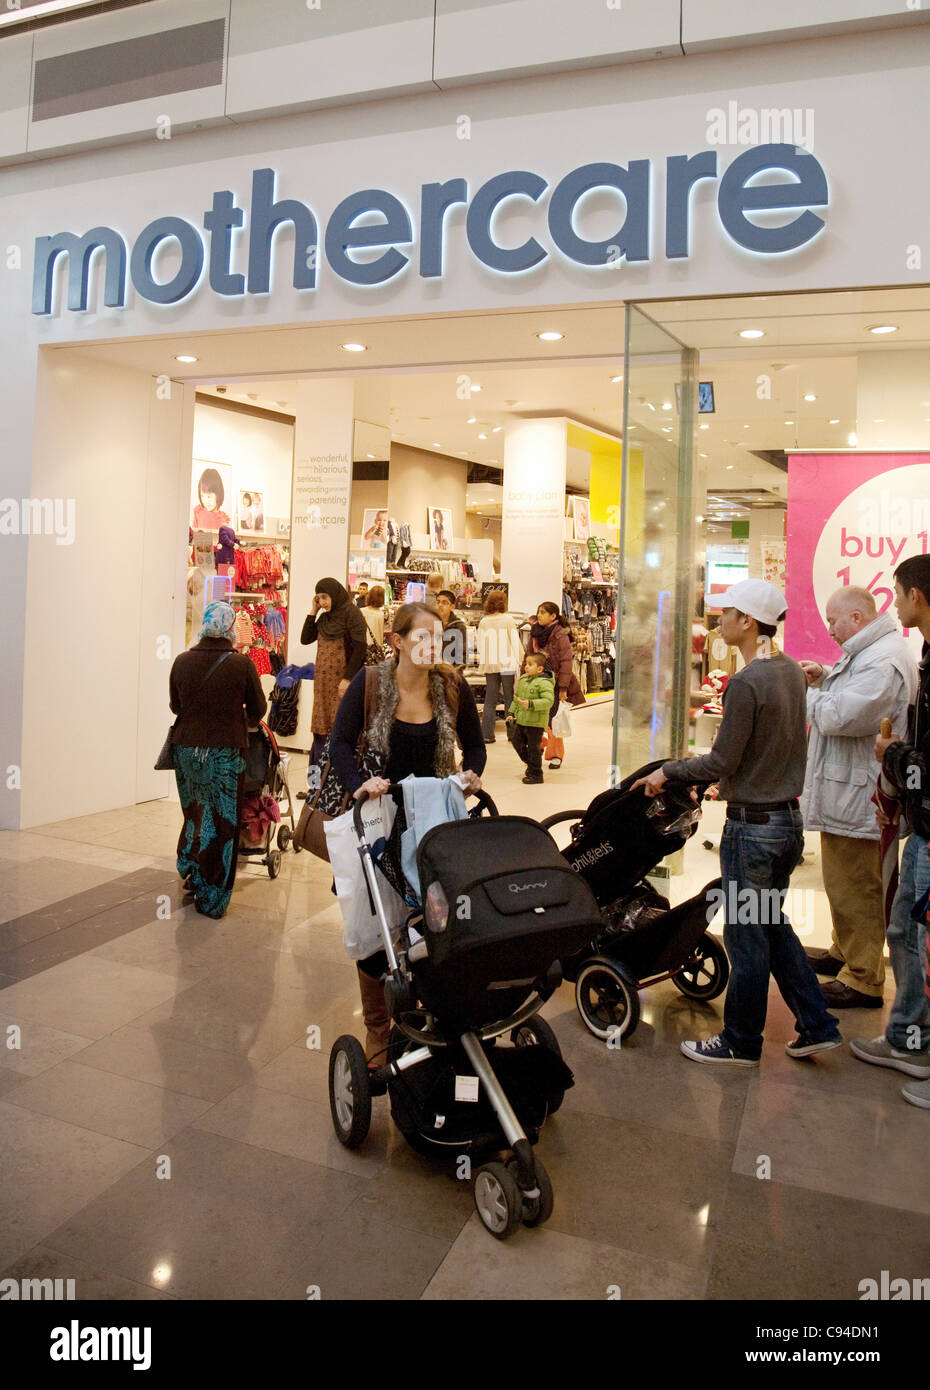 Mothercare store, Westfield shopping centre Stratford london UK - Stock Image